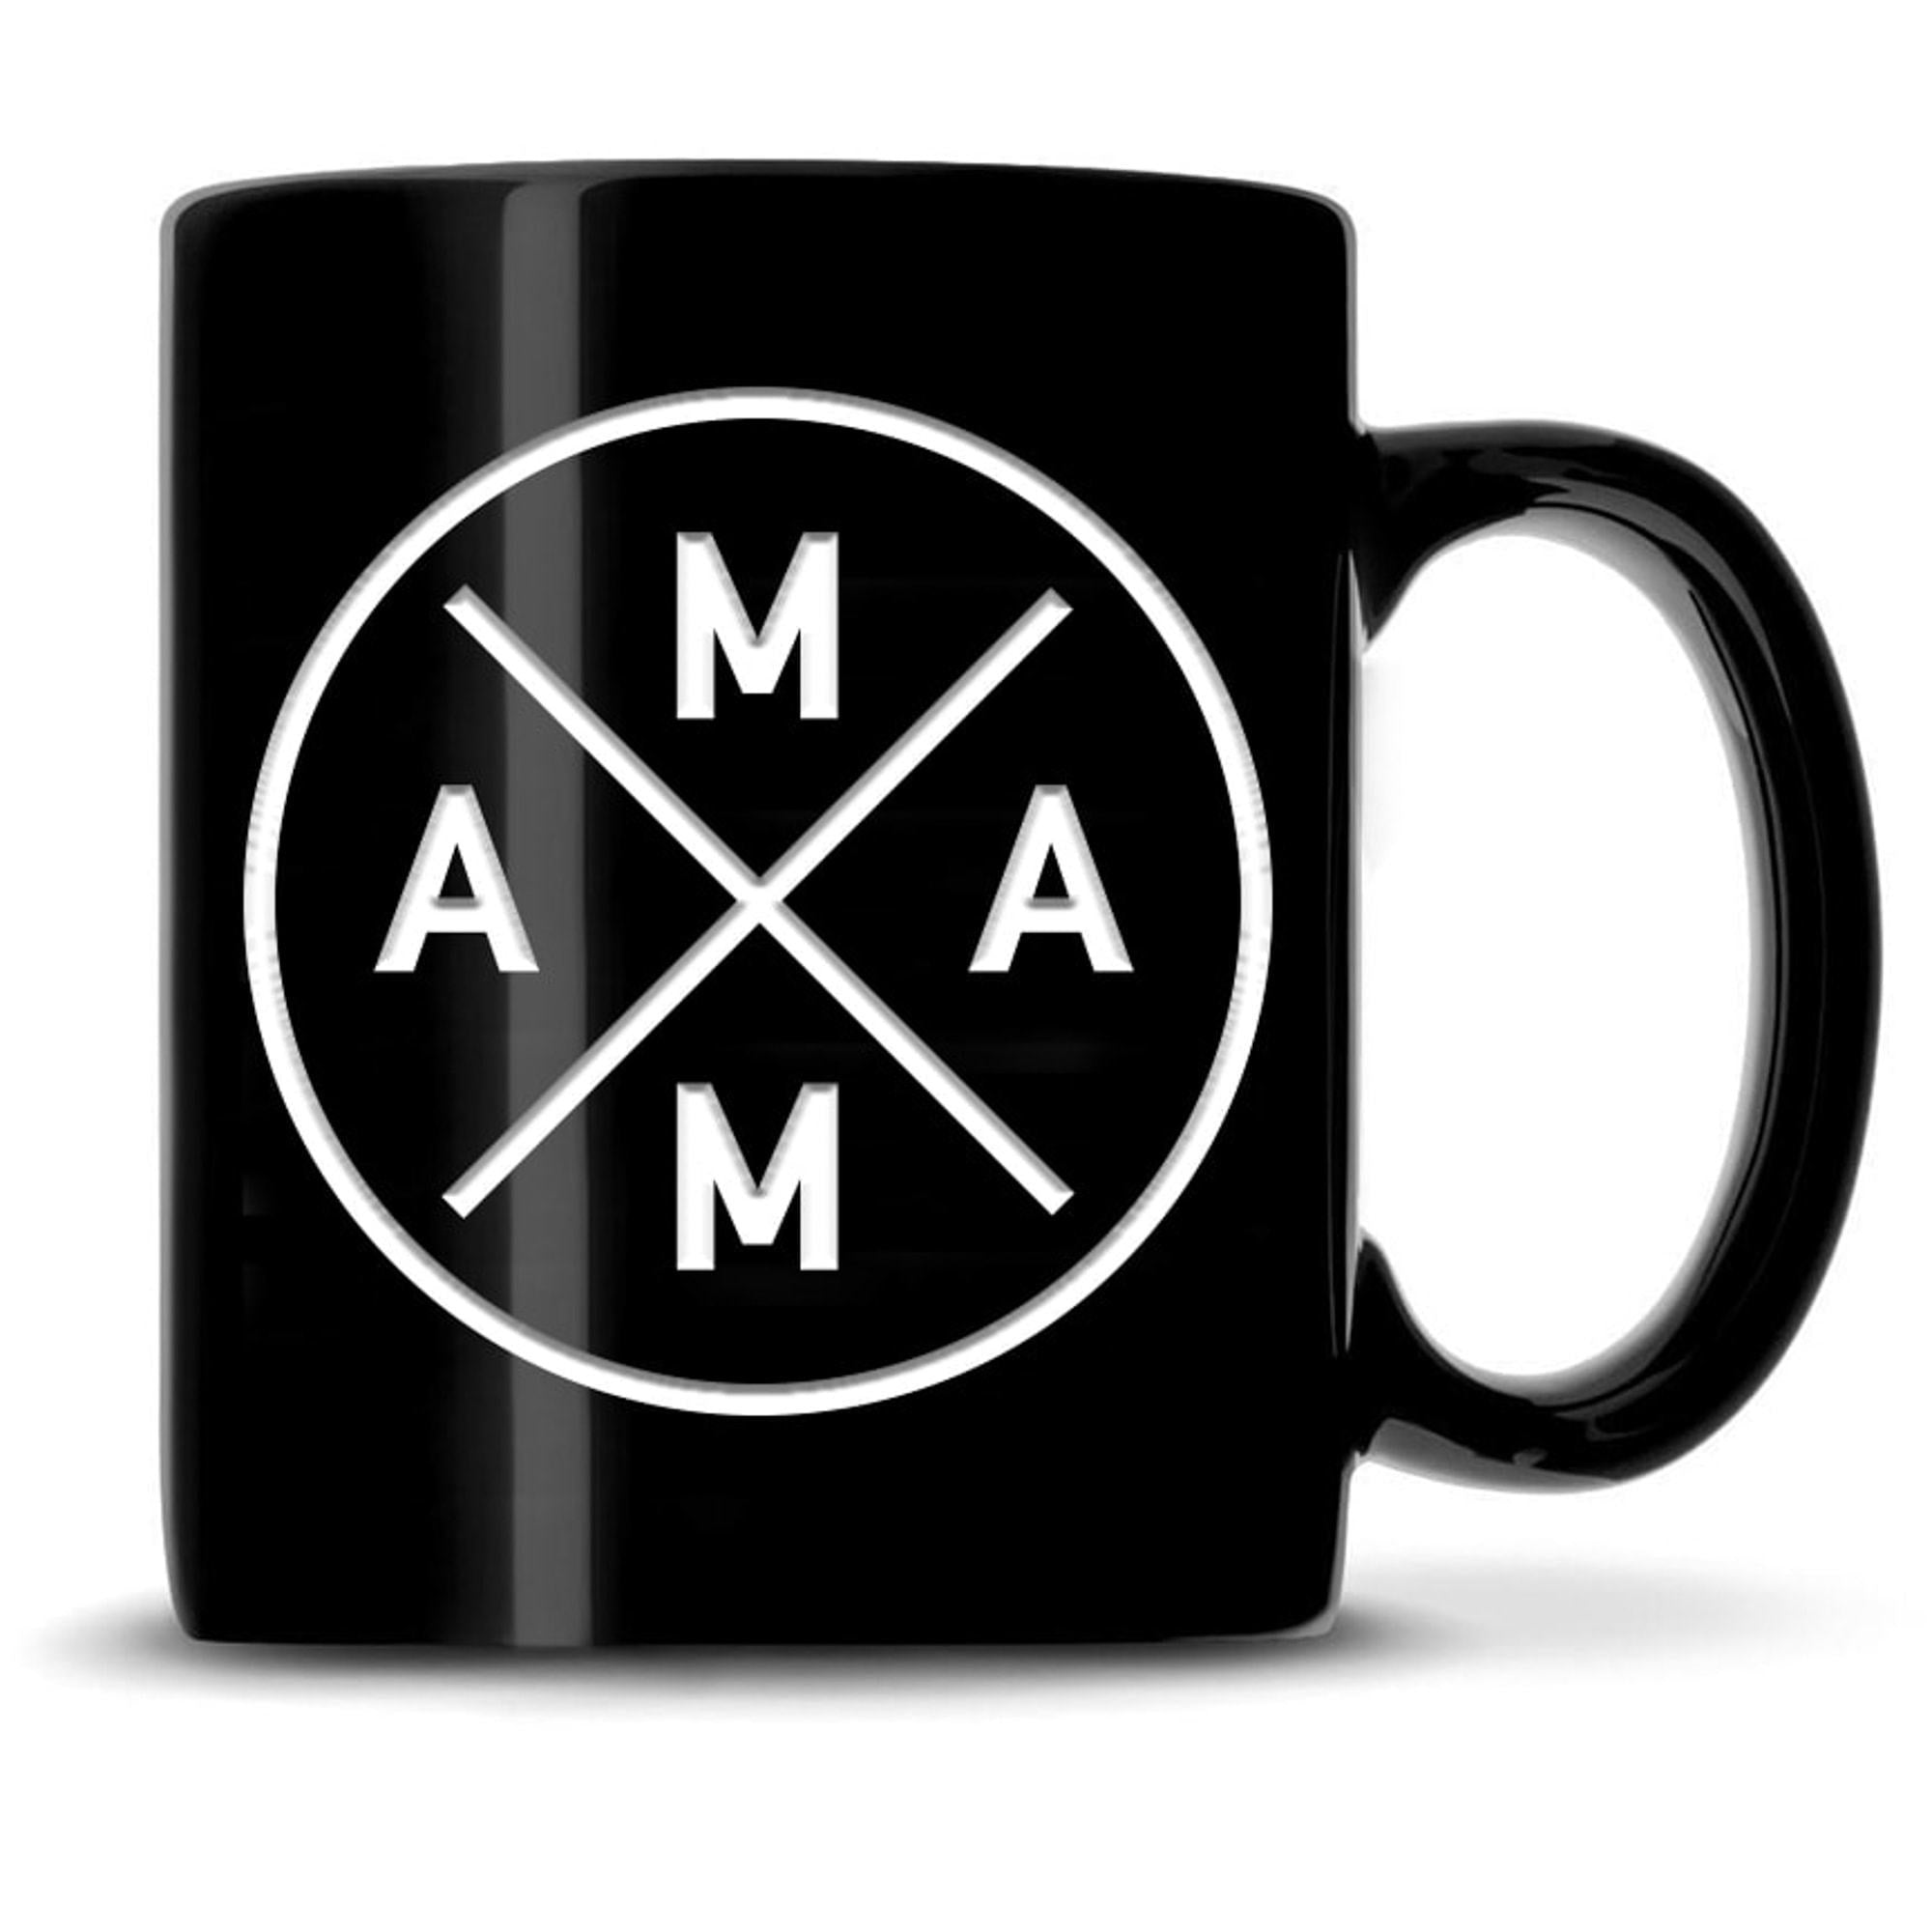 Premium Coffee Mug, MAMA Design Integrity Bottles